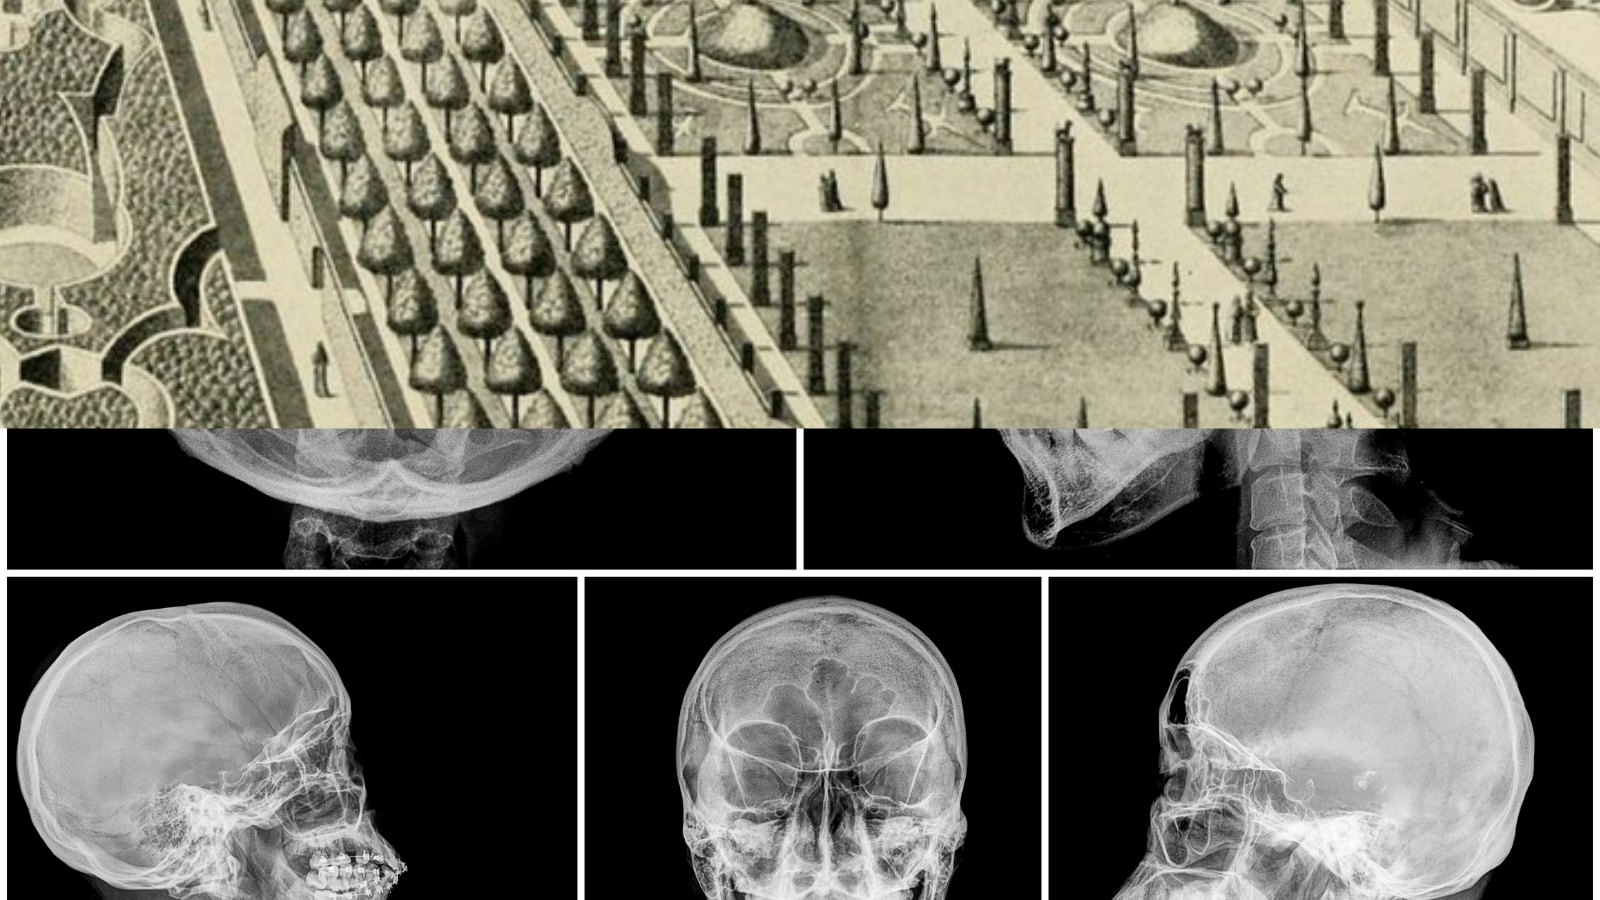 The top half of this collaged image is a black & white drawing of a large and orderly garden, and the bottom half is an x-ray of a human skull from multiple angles.